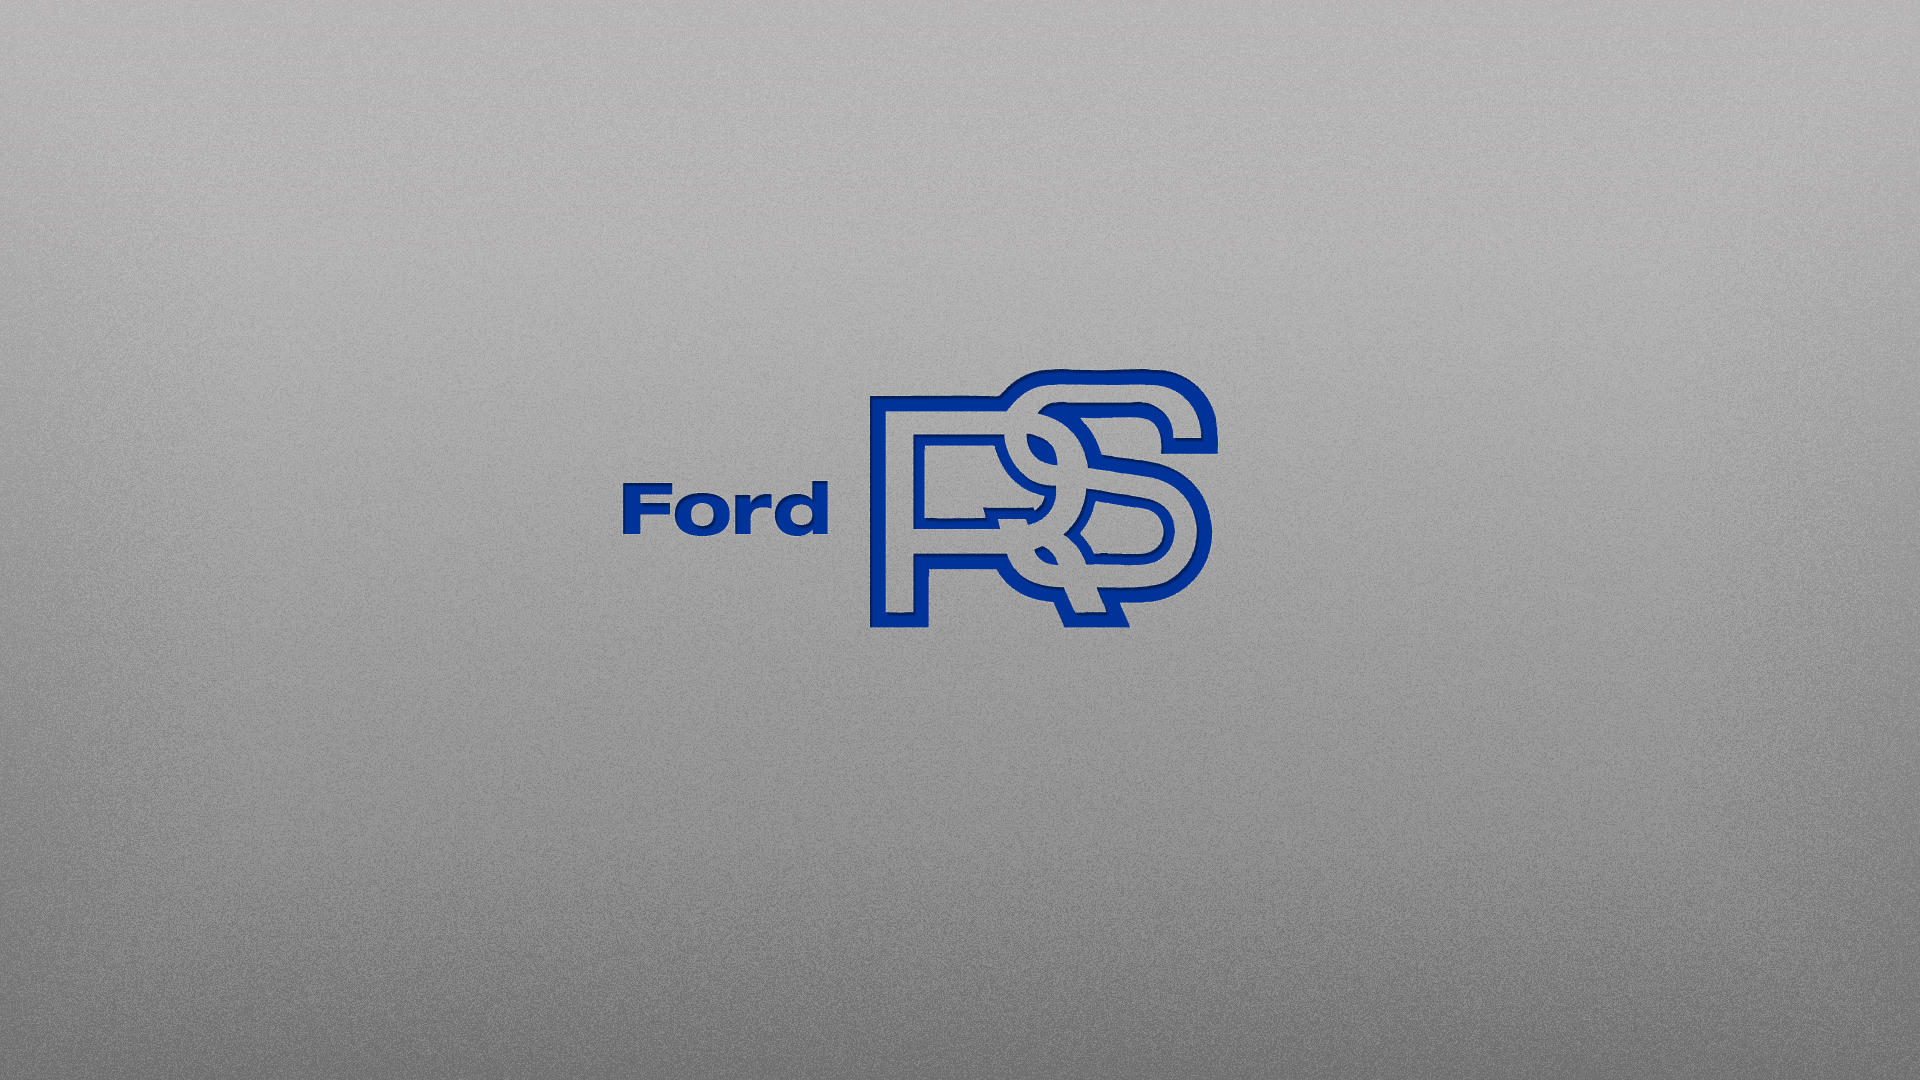 Ford RS Wallpaper by Mitch 94 1920x1080